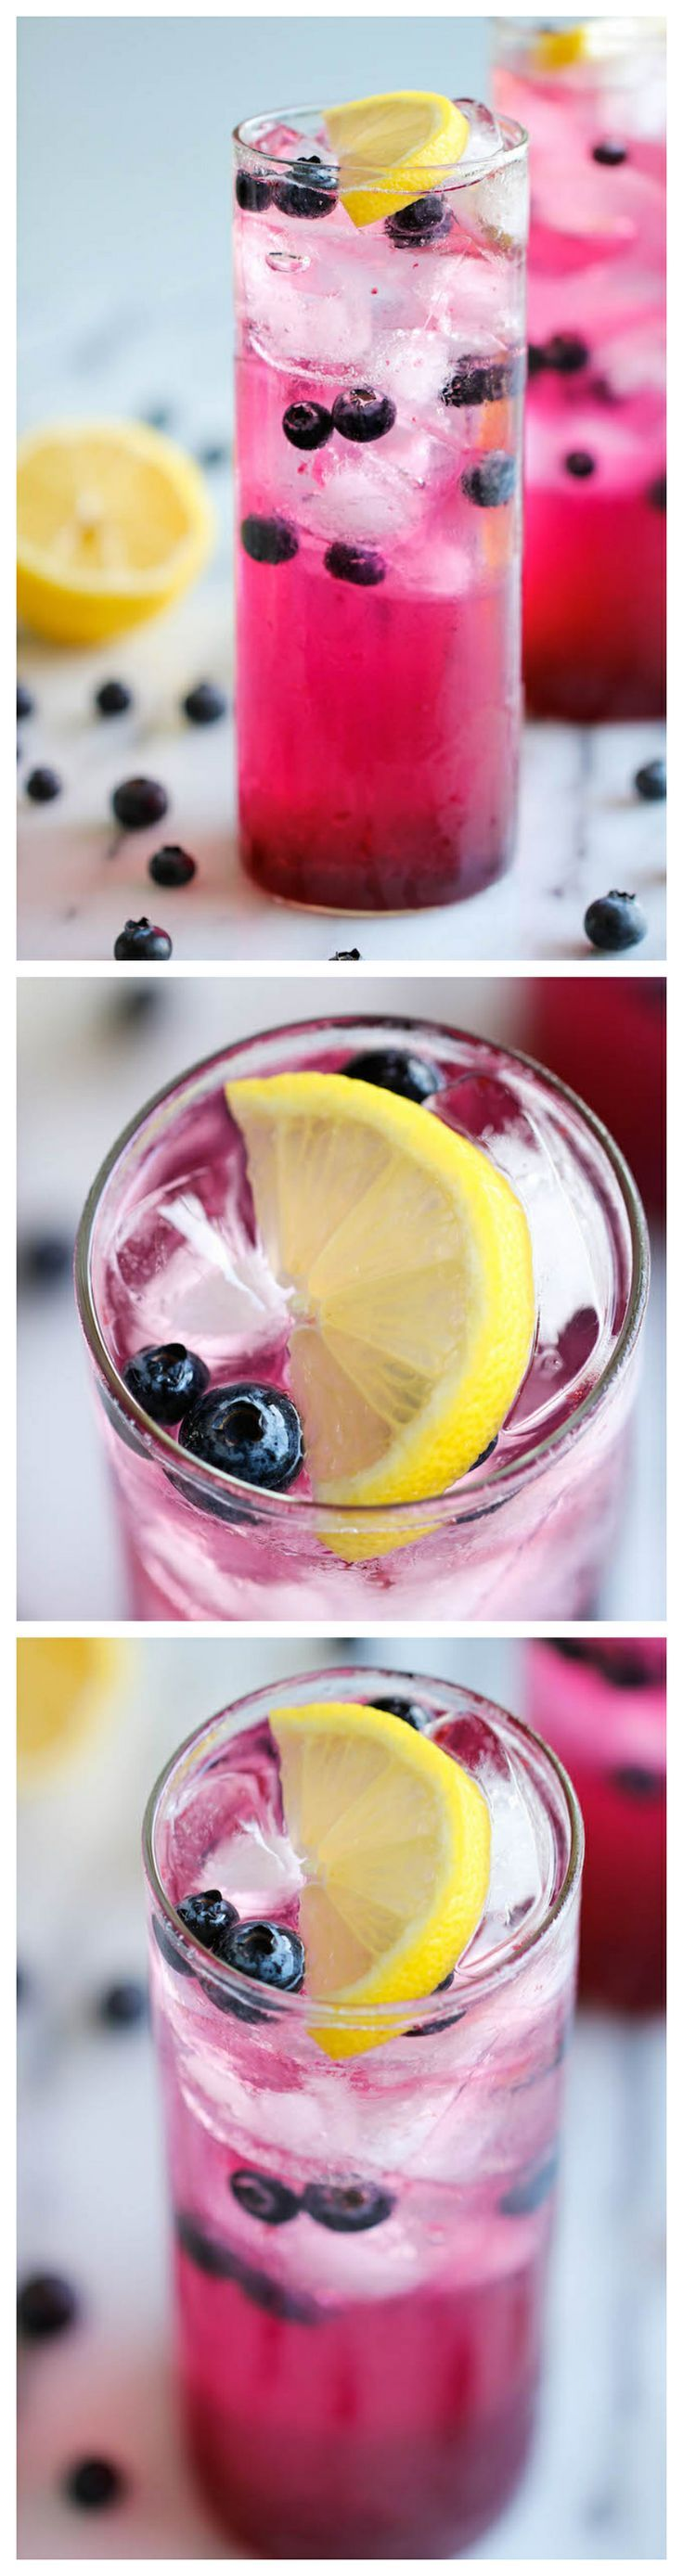 Blueberry Lemonade #lemonade #recipe #spring